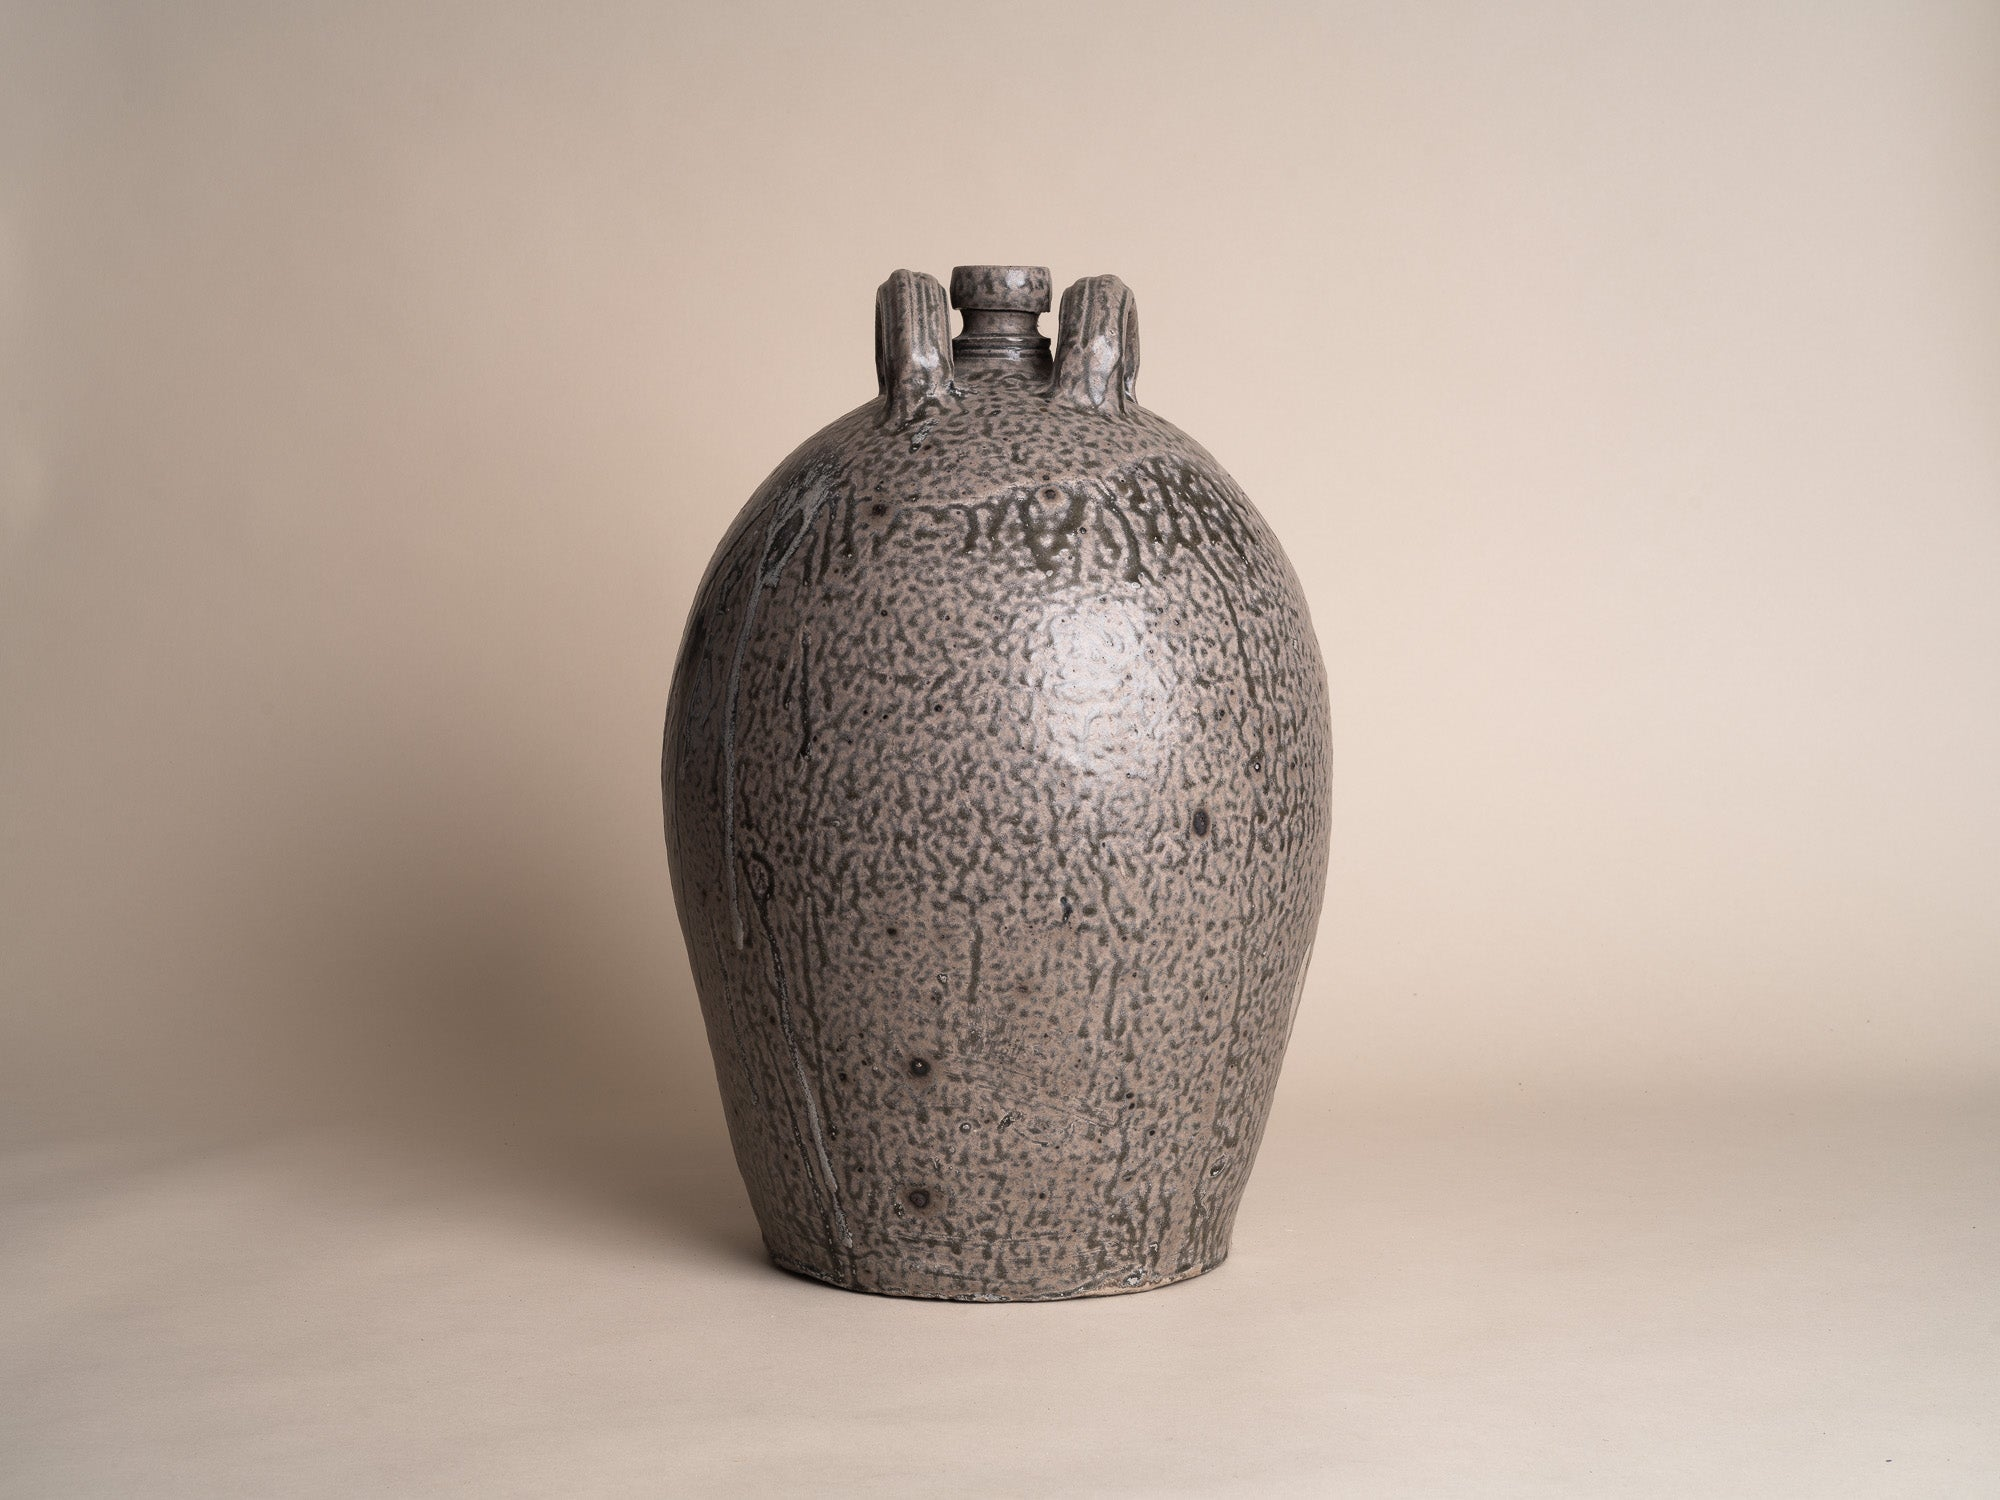 "Rare jarre bombonne ""peau de serpent"" en grès du Berry, France (XIXe siècle)..Snakeskin glazed Stoneware folk pot by anonymous Berry potters, France (19th century)"